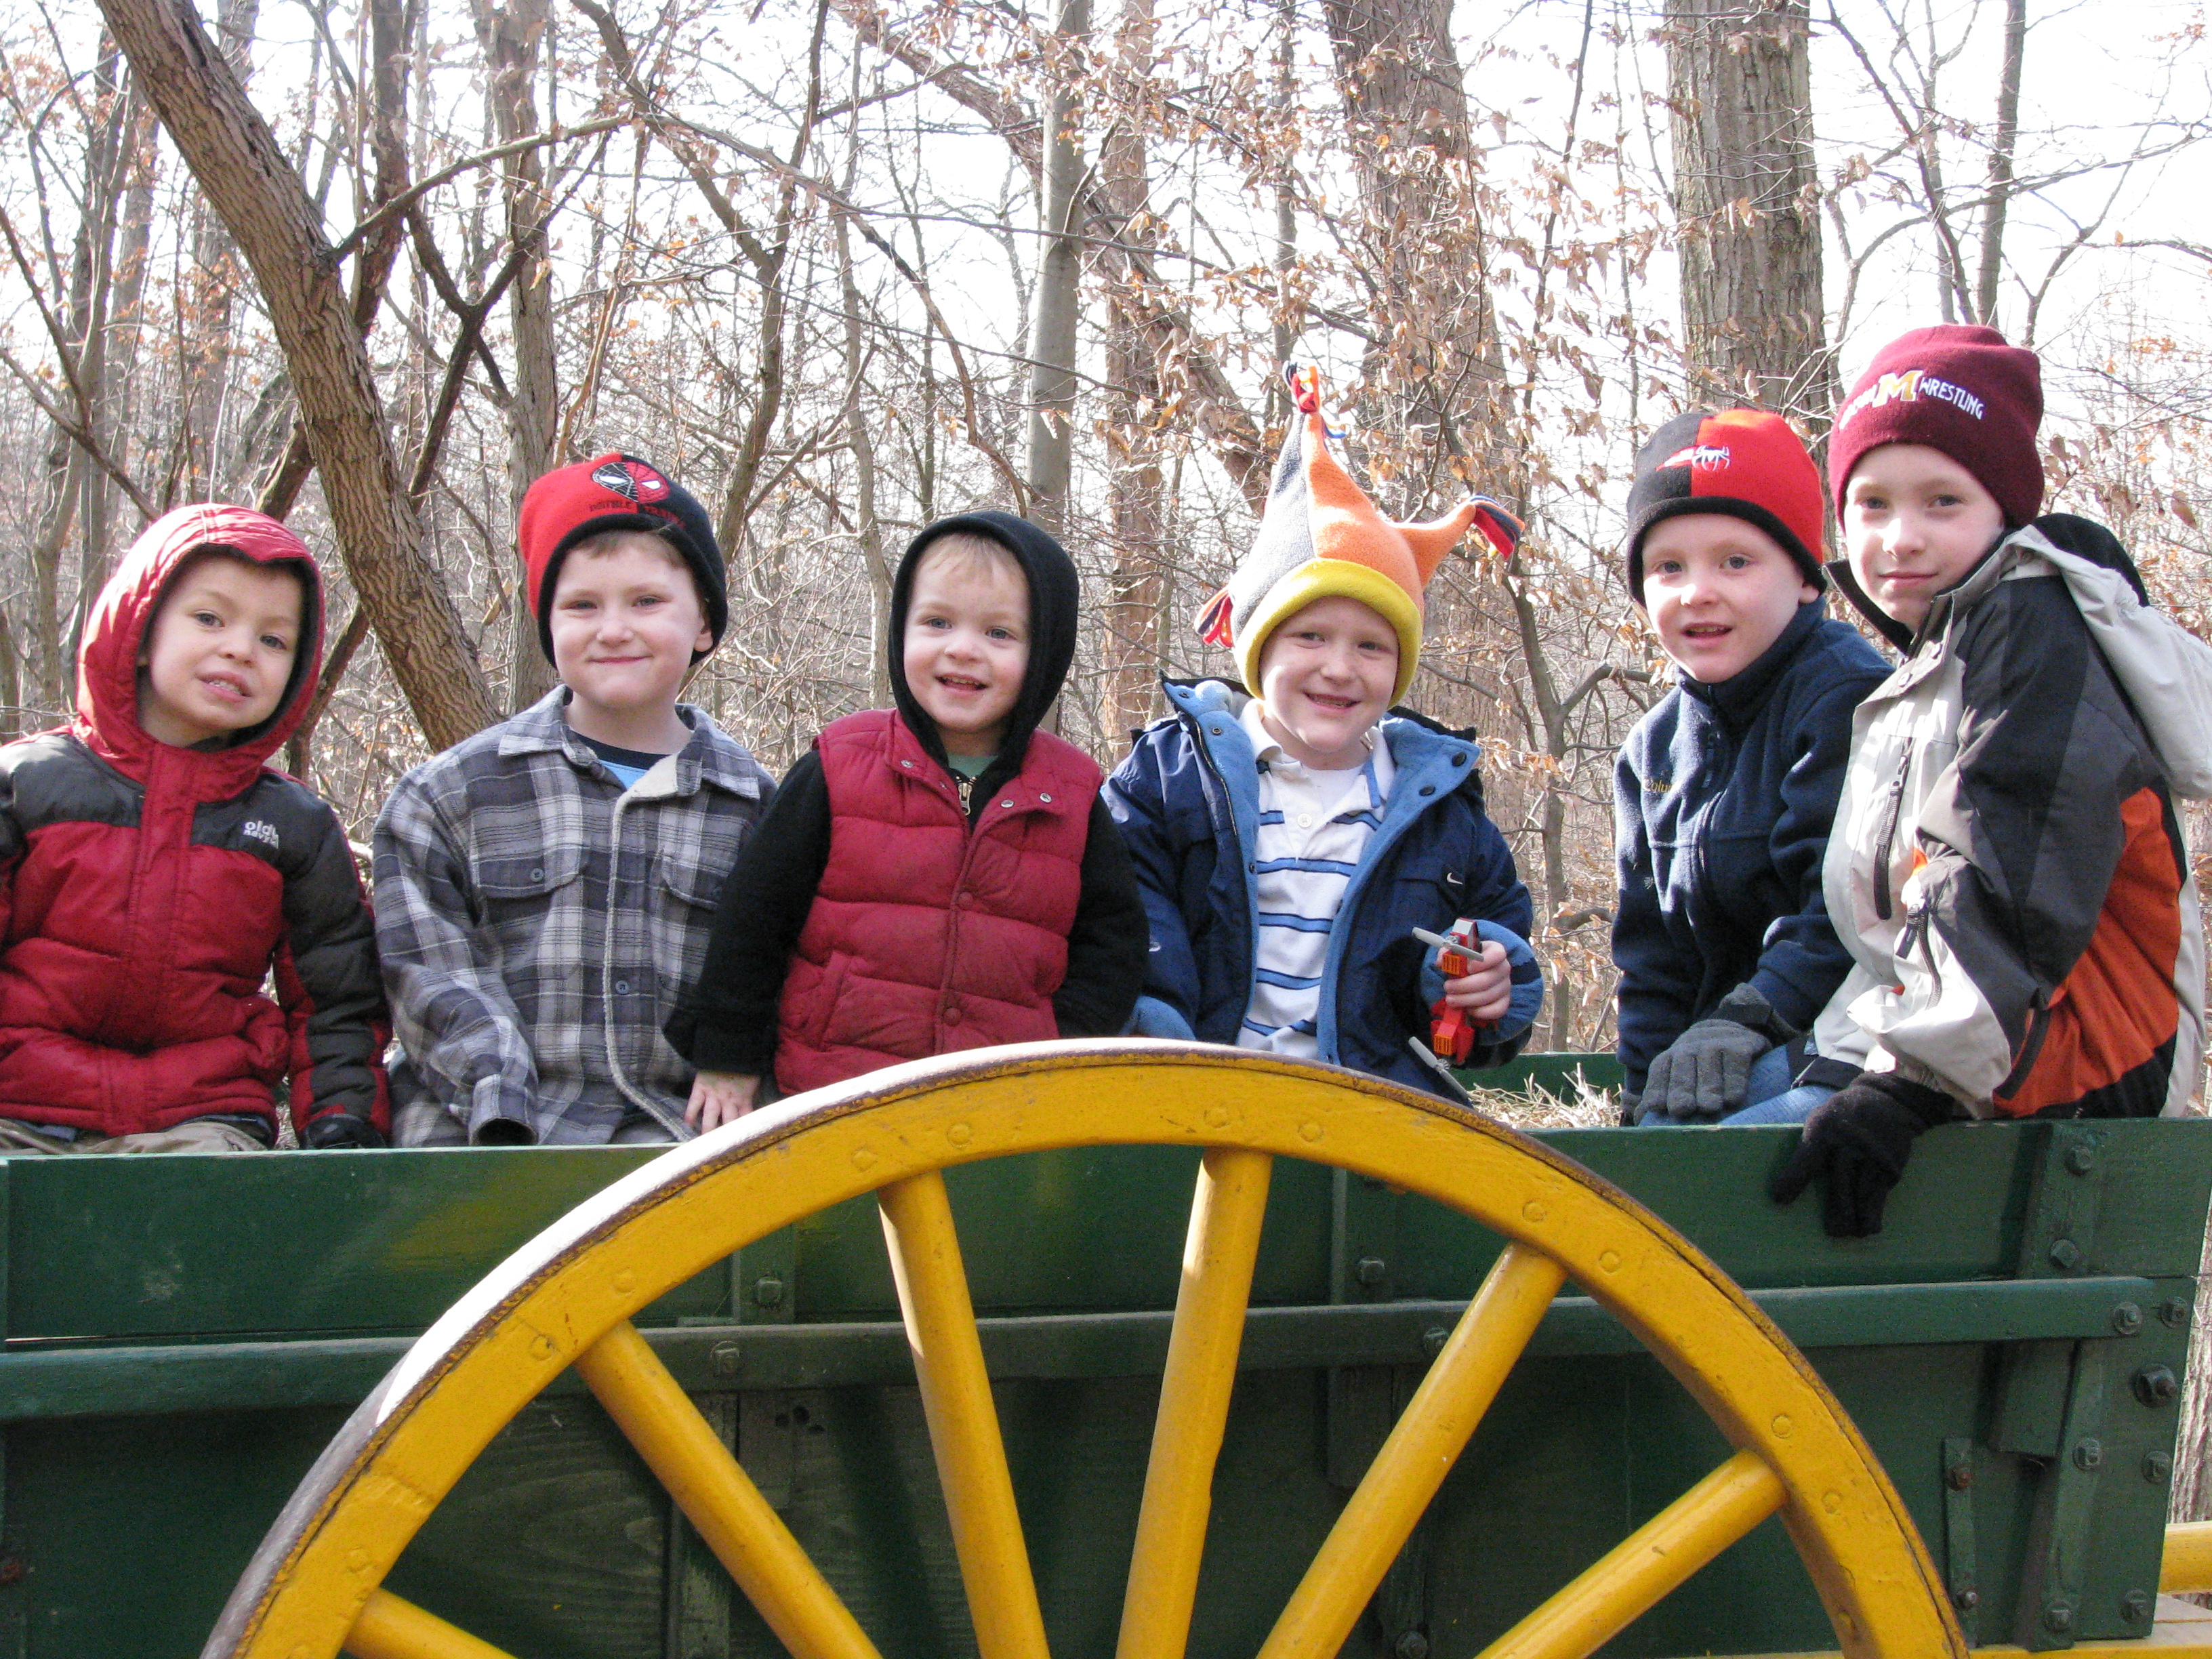 Maple Sugar FESTIVAL at the Great Swamp OEC